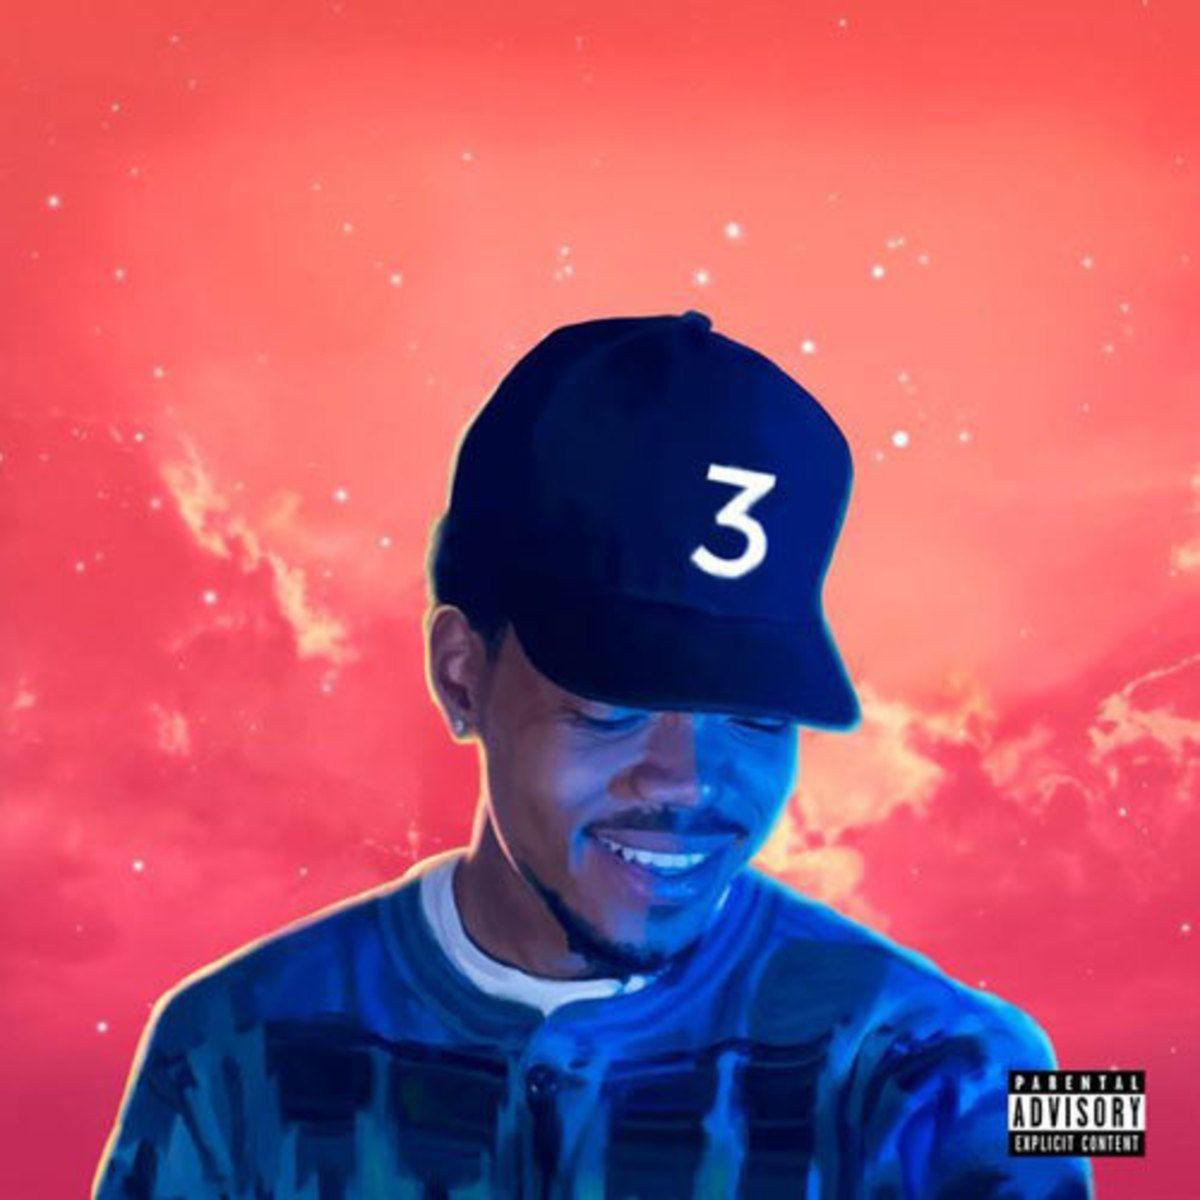 Chance The Rapper Coloring Book Download Awesome Chance The Rapper S Album Cover For His Album Coloring Bo Coloring Book Album Cool Album Covers Mixtape Cover